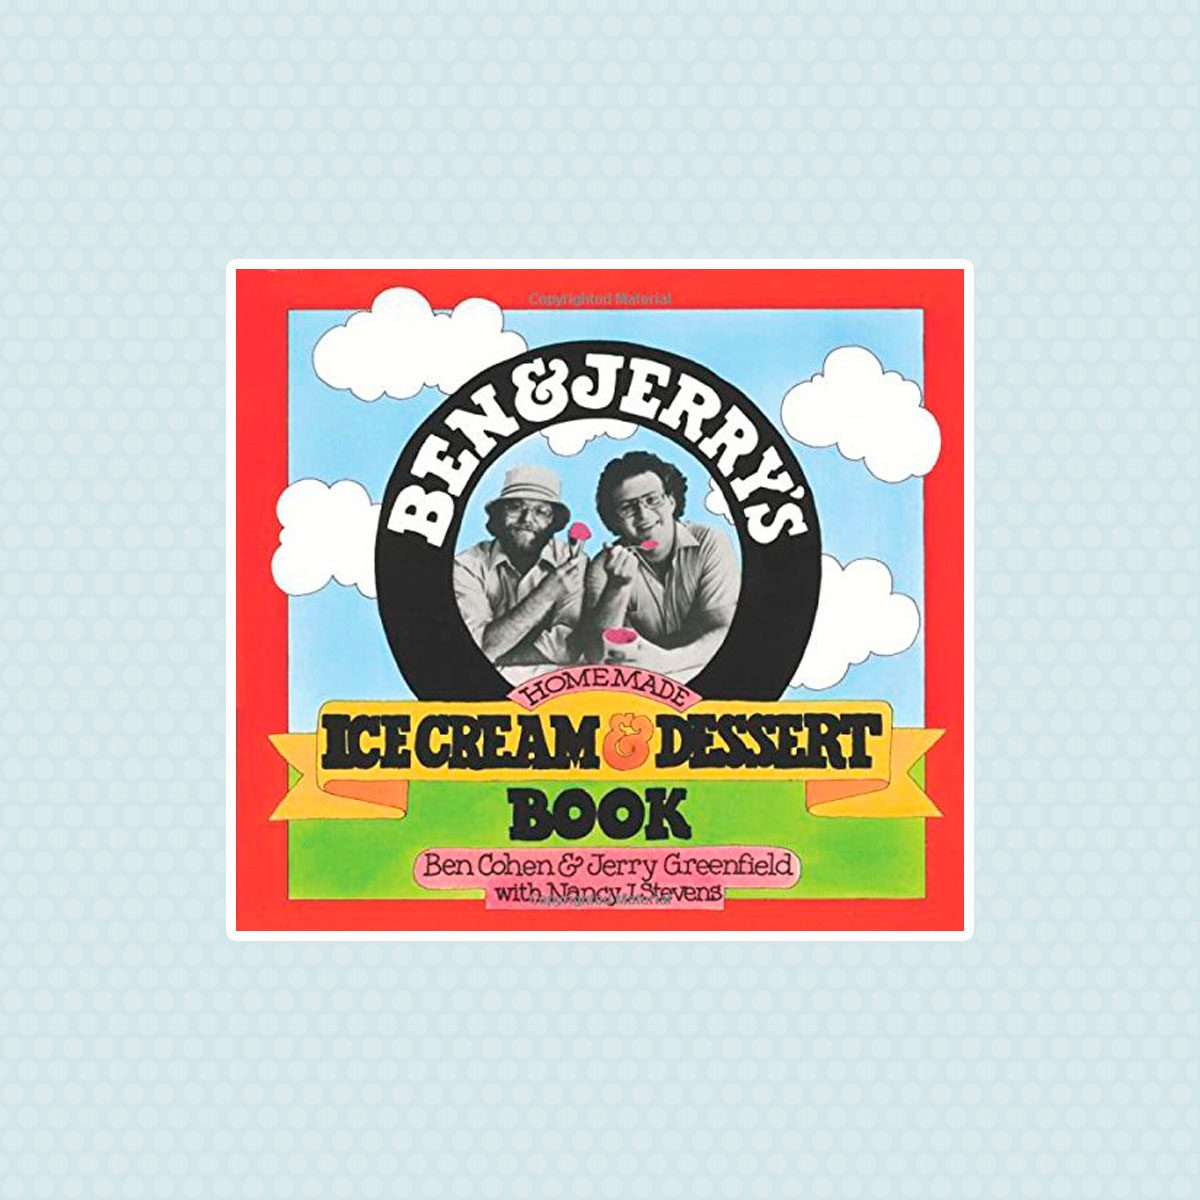 Ben & Jerry's Homemade Ice Cream Book